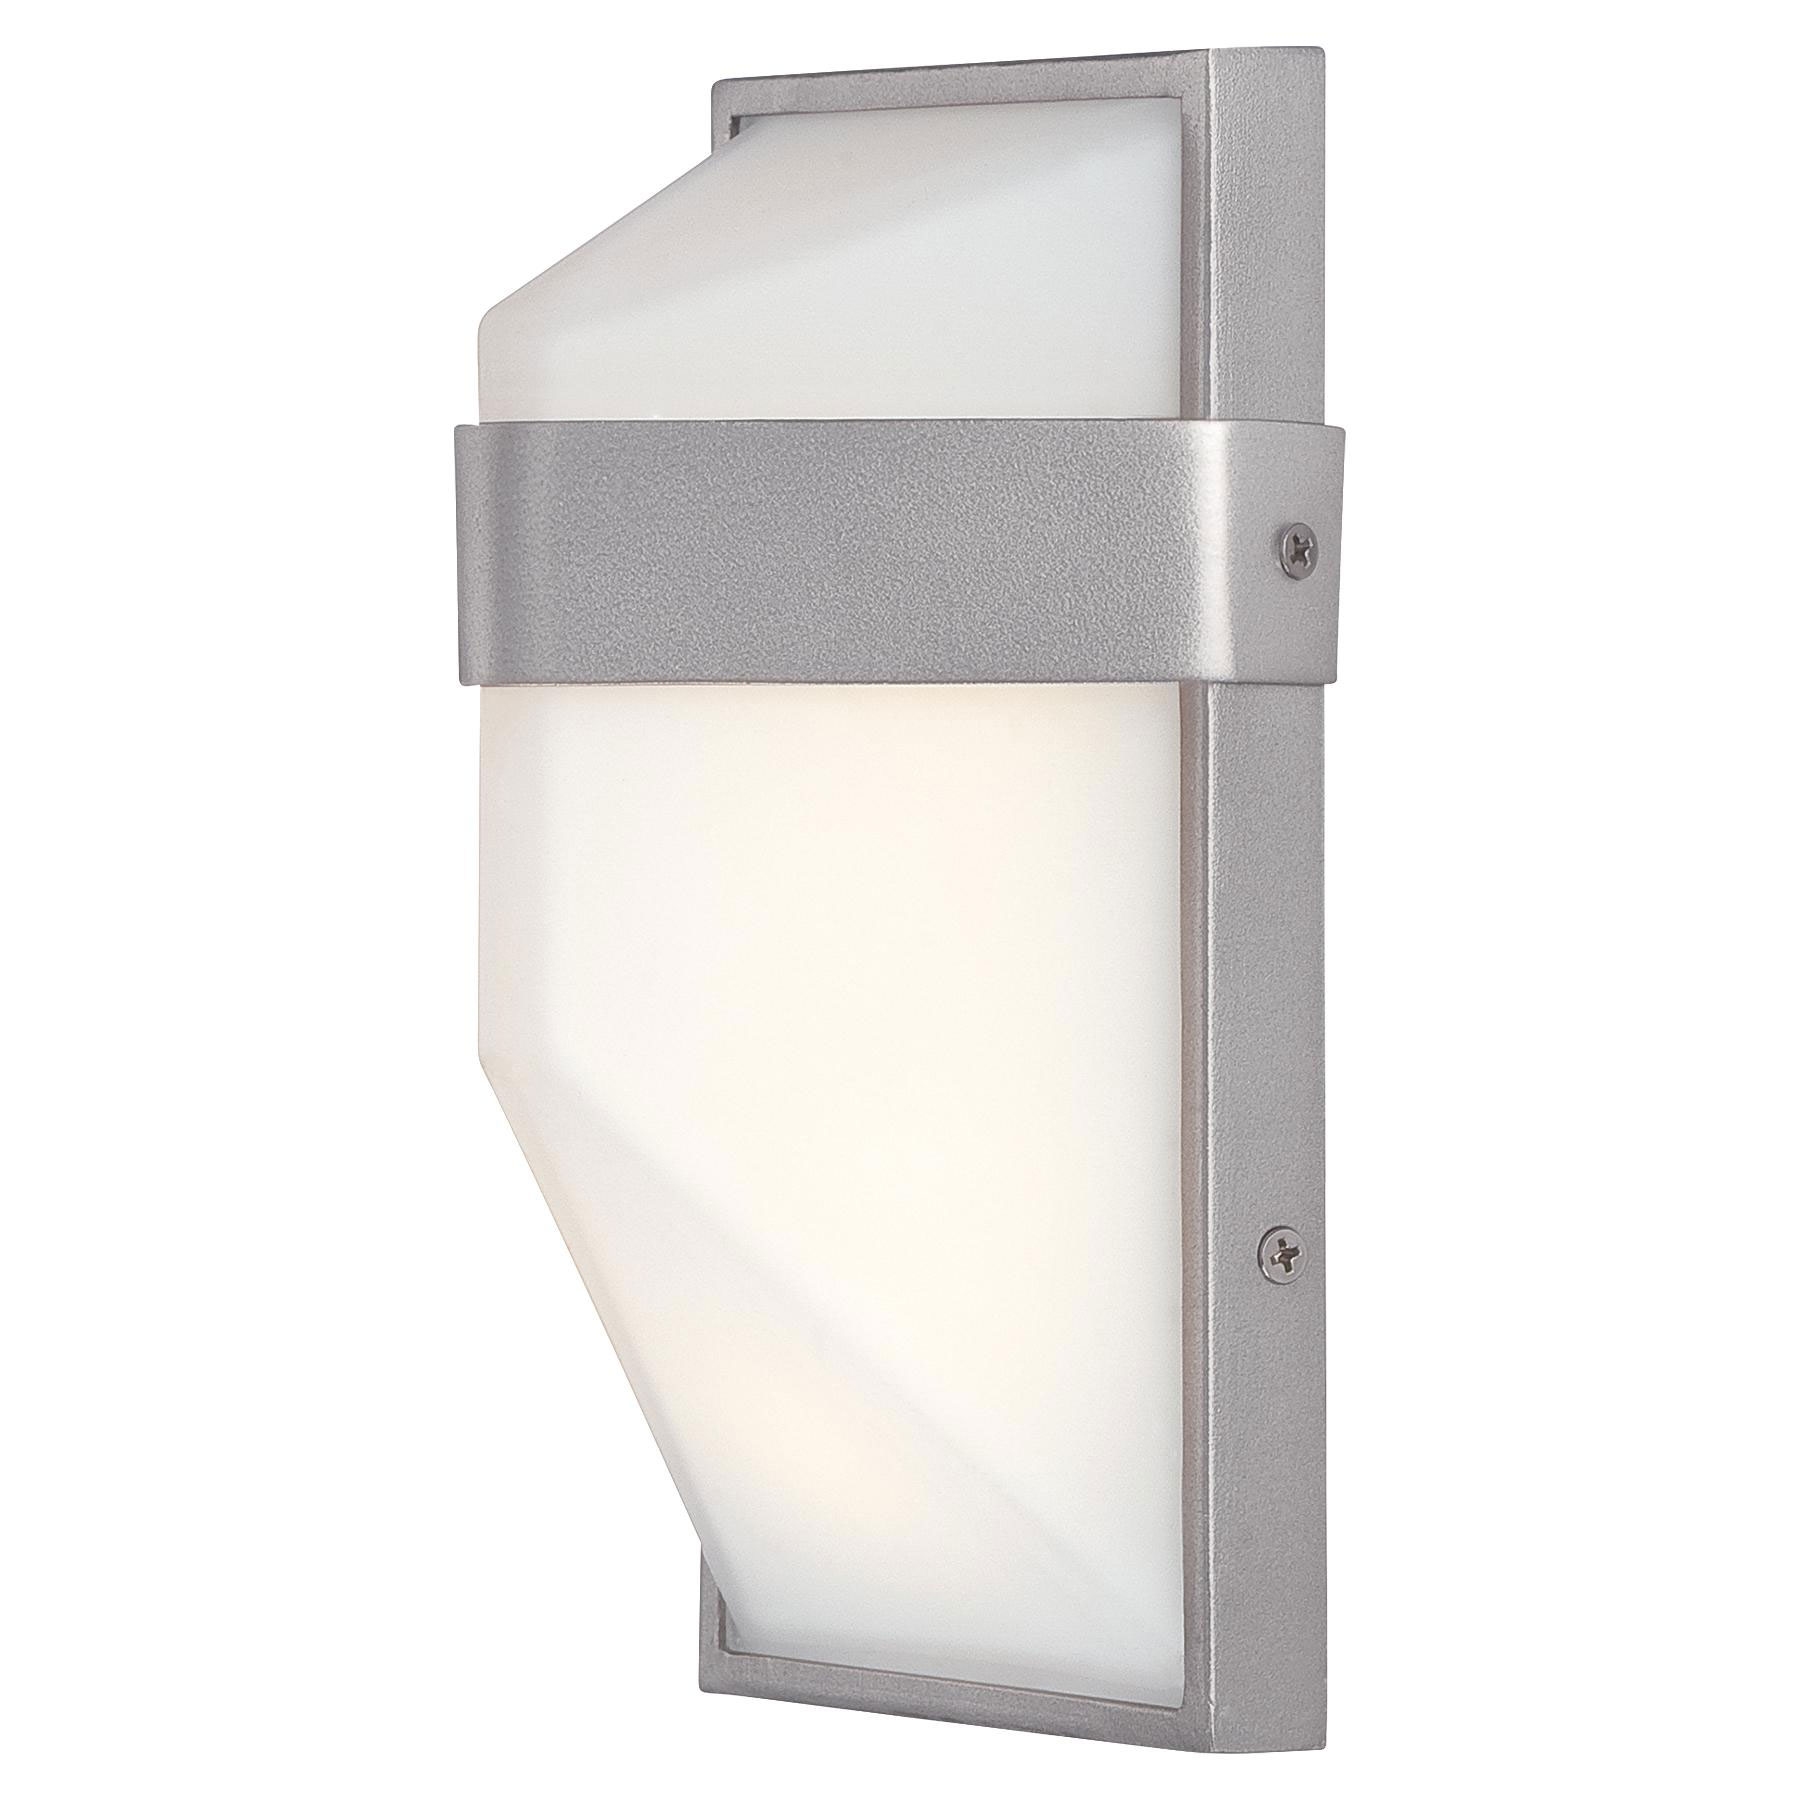 Wedge Exterior Wall Lights : Wedge Outdoor LED Wall Sconce by George Kovacs P1236-566-L